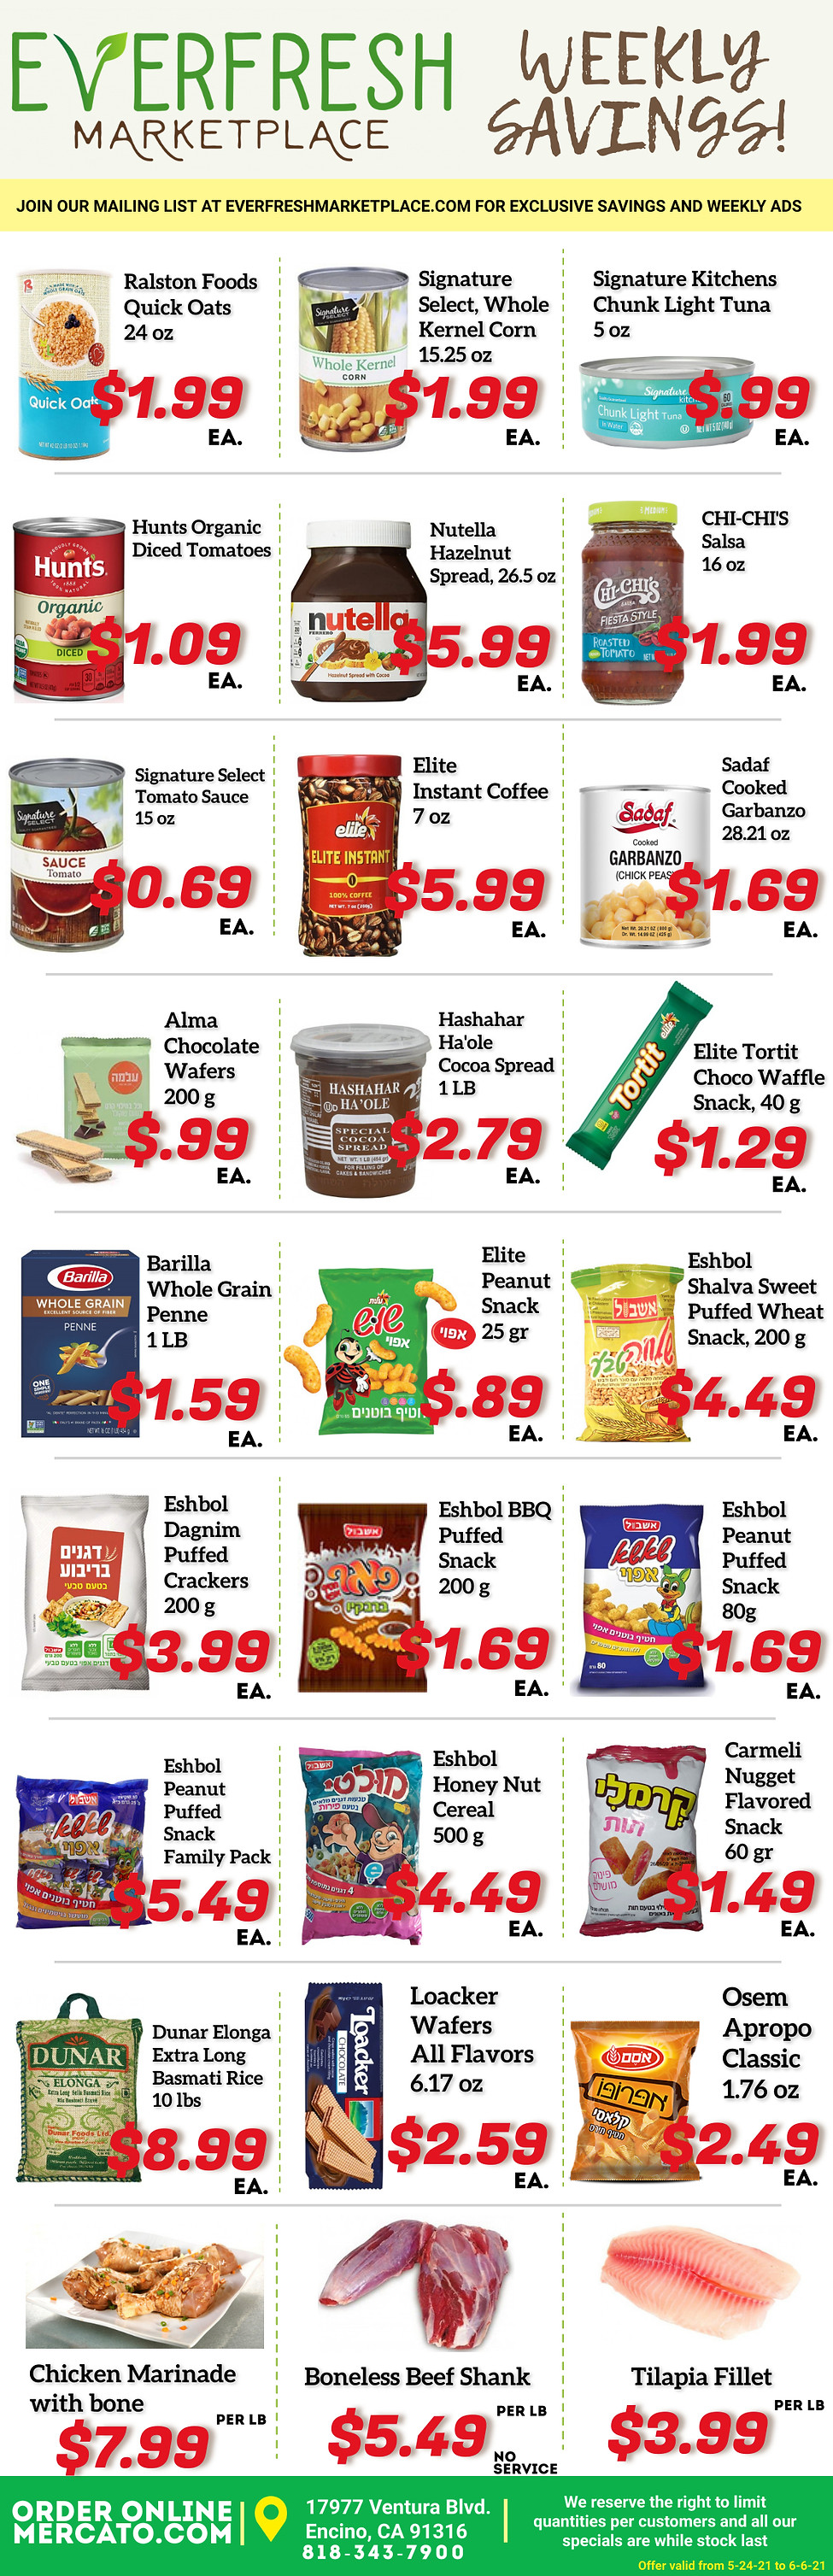 Weekly ad 5-24-21 to 6-6-21.jpg